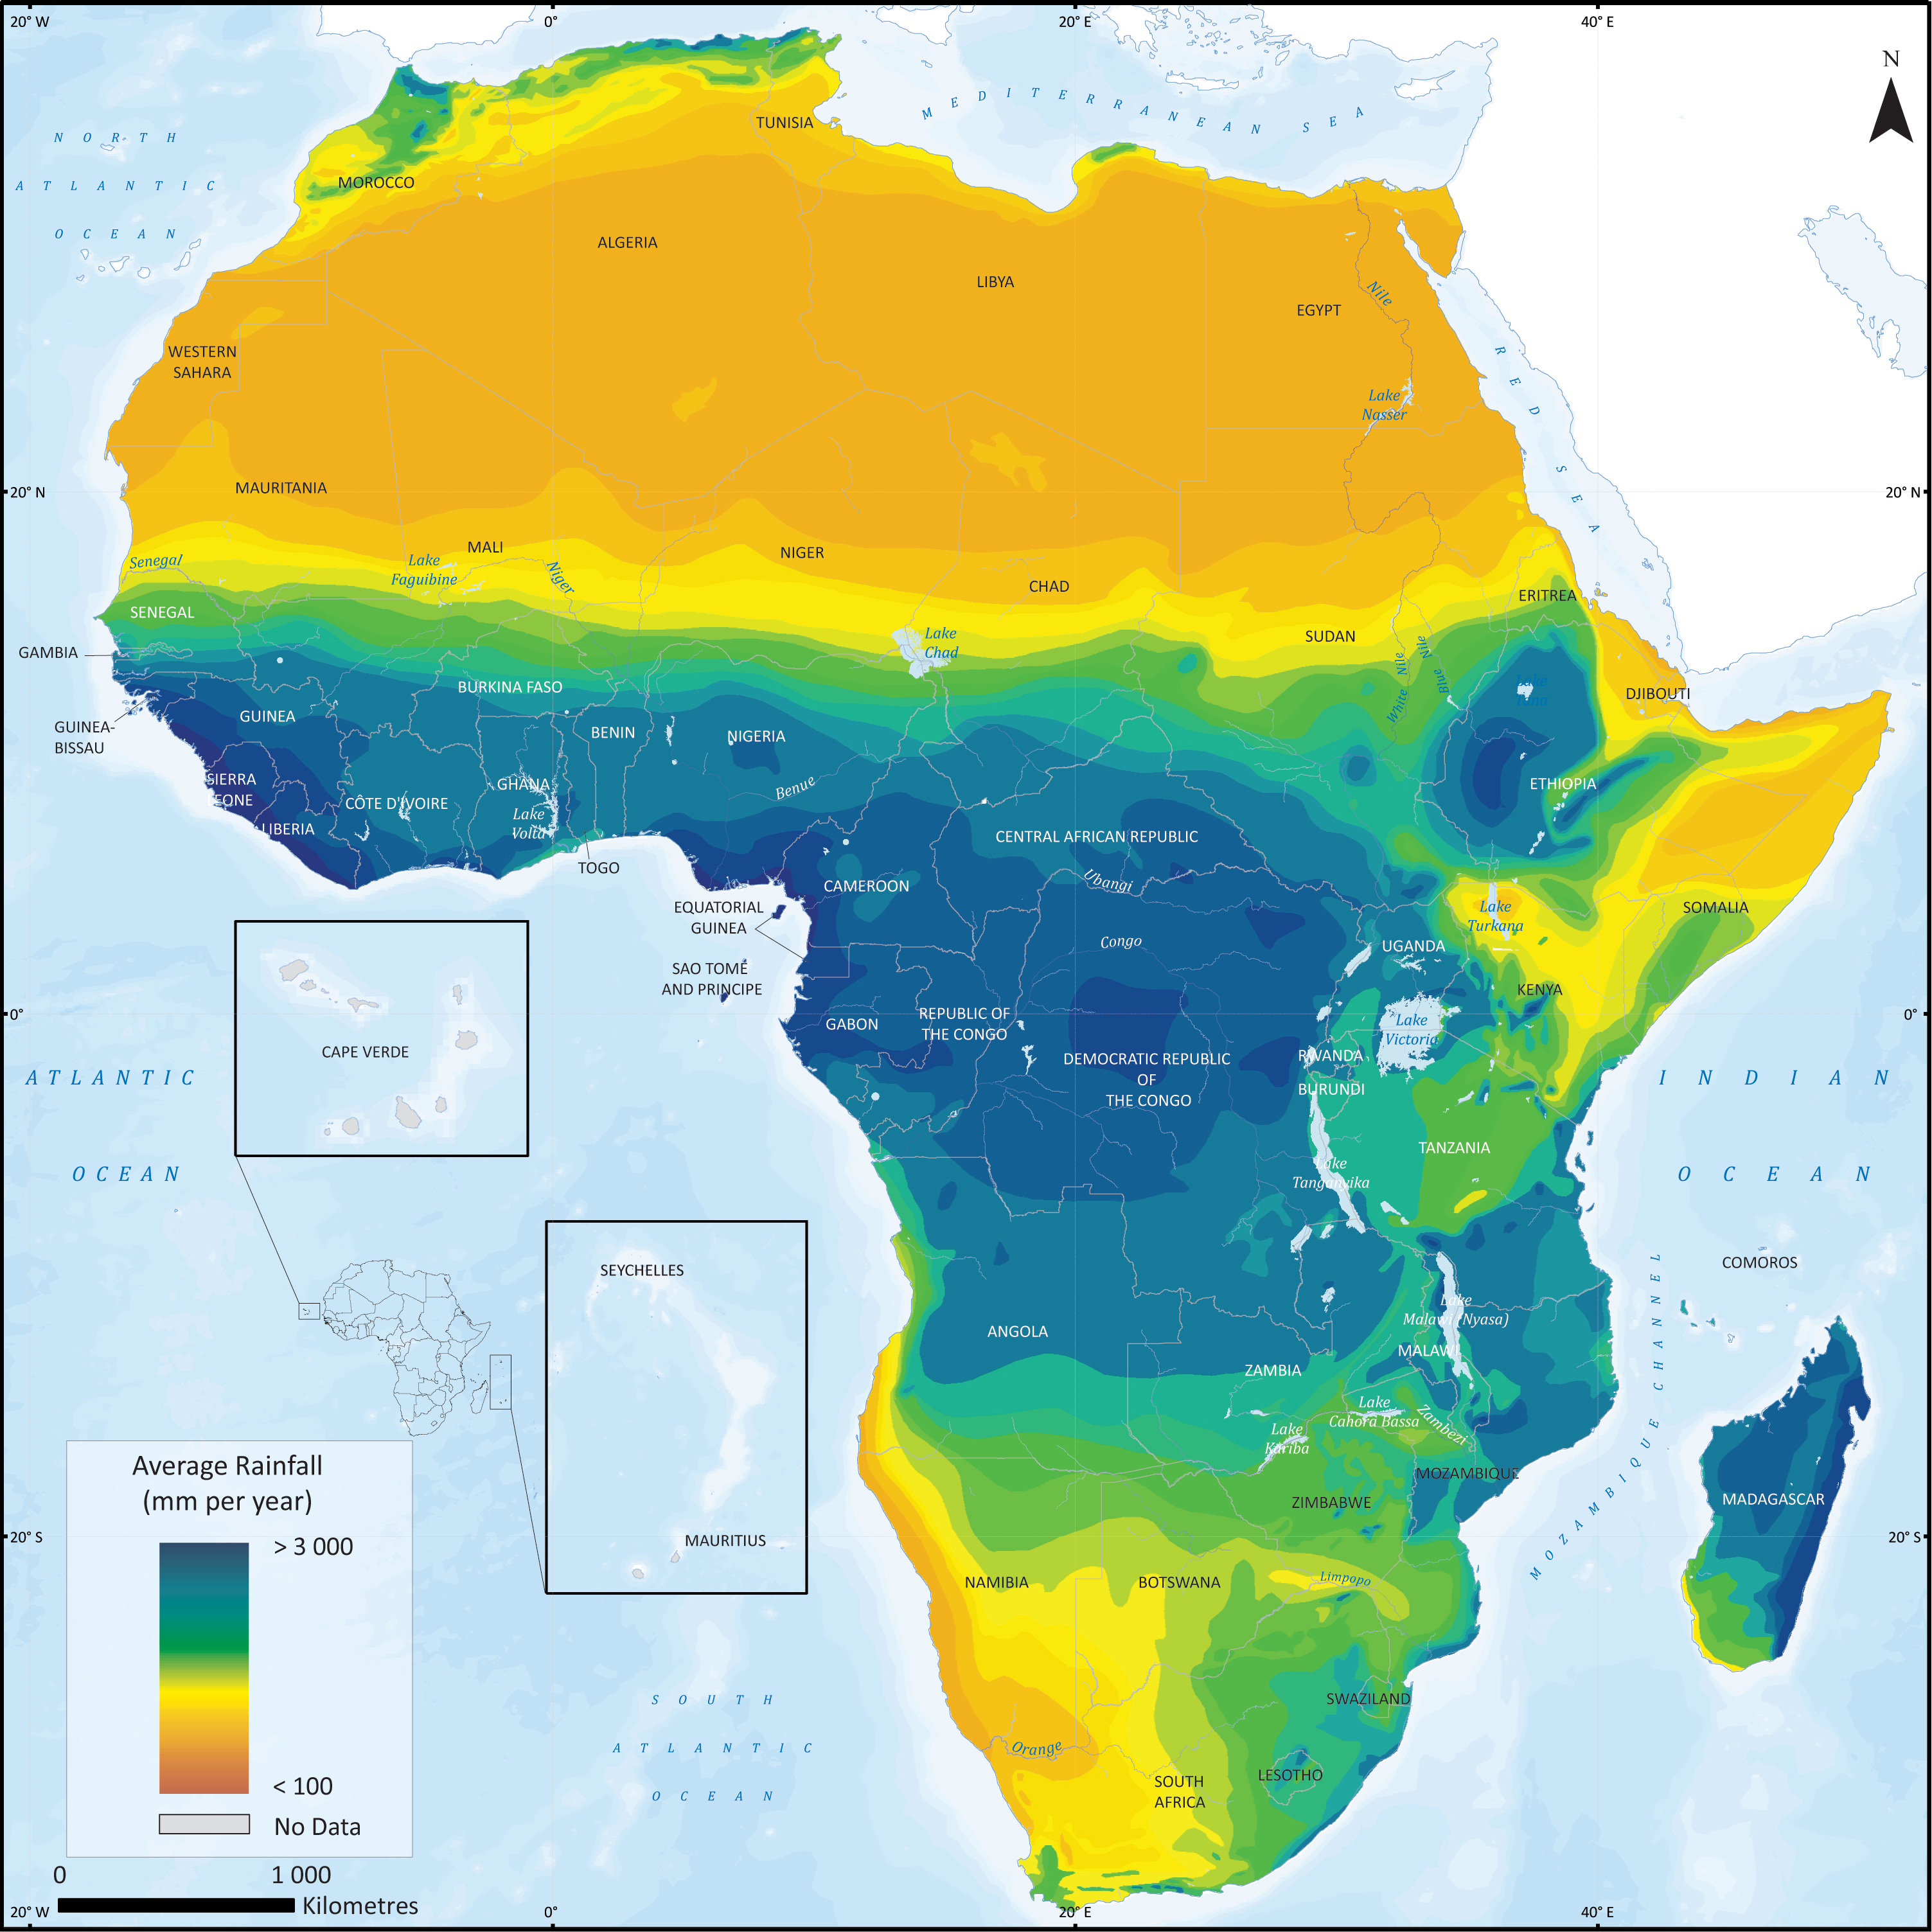 Rainfall in Africa | Maps | Africa map, Africa, African map